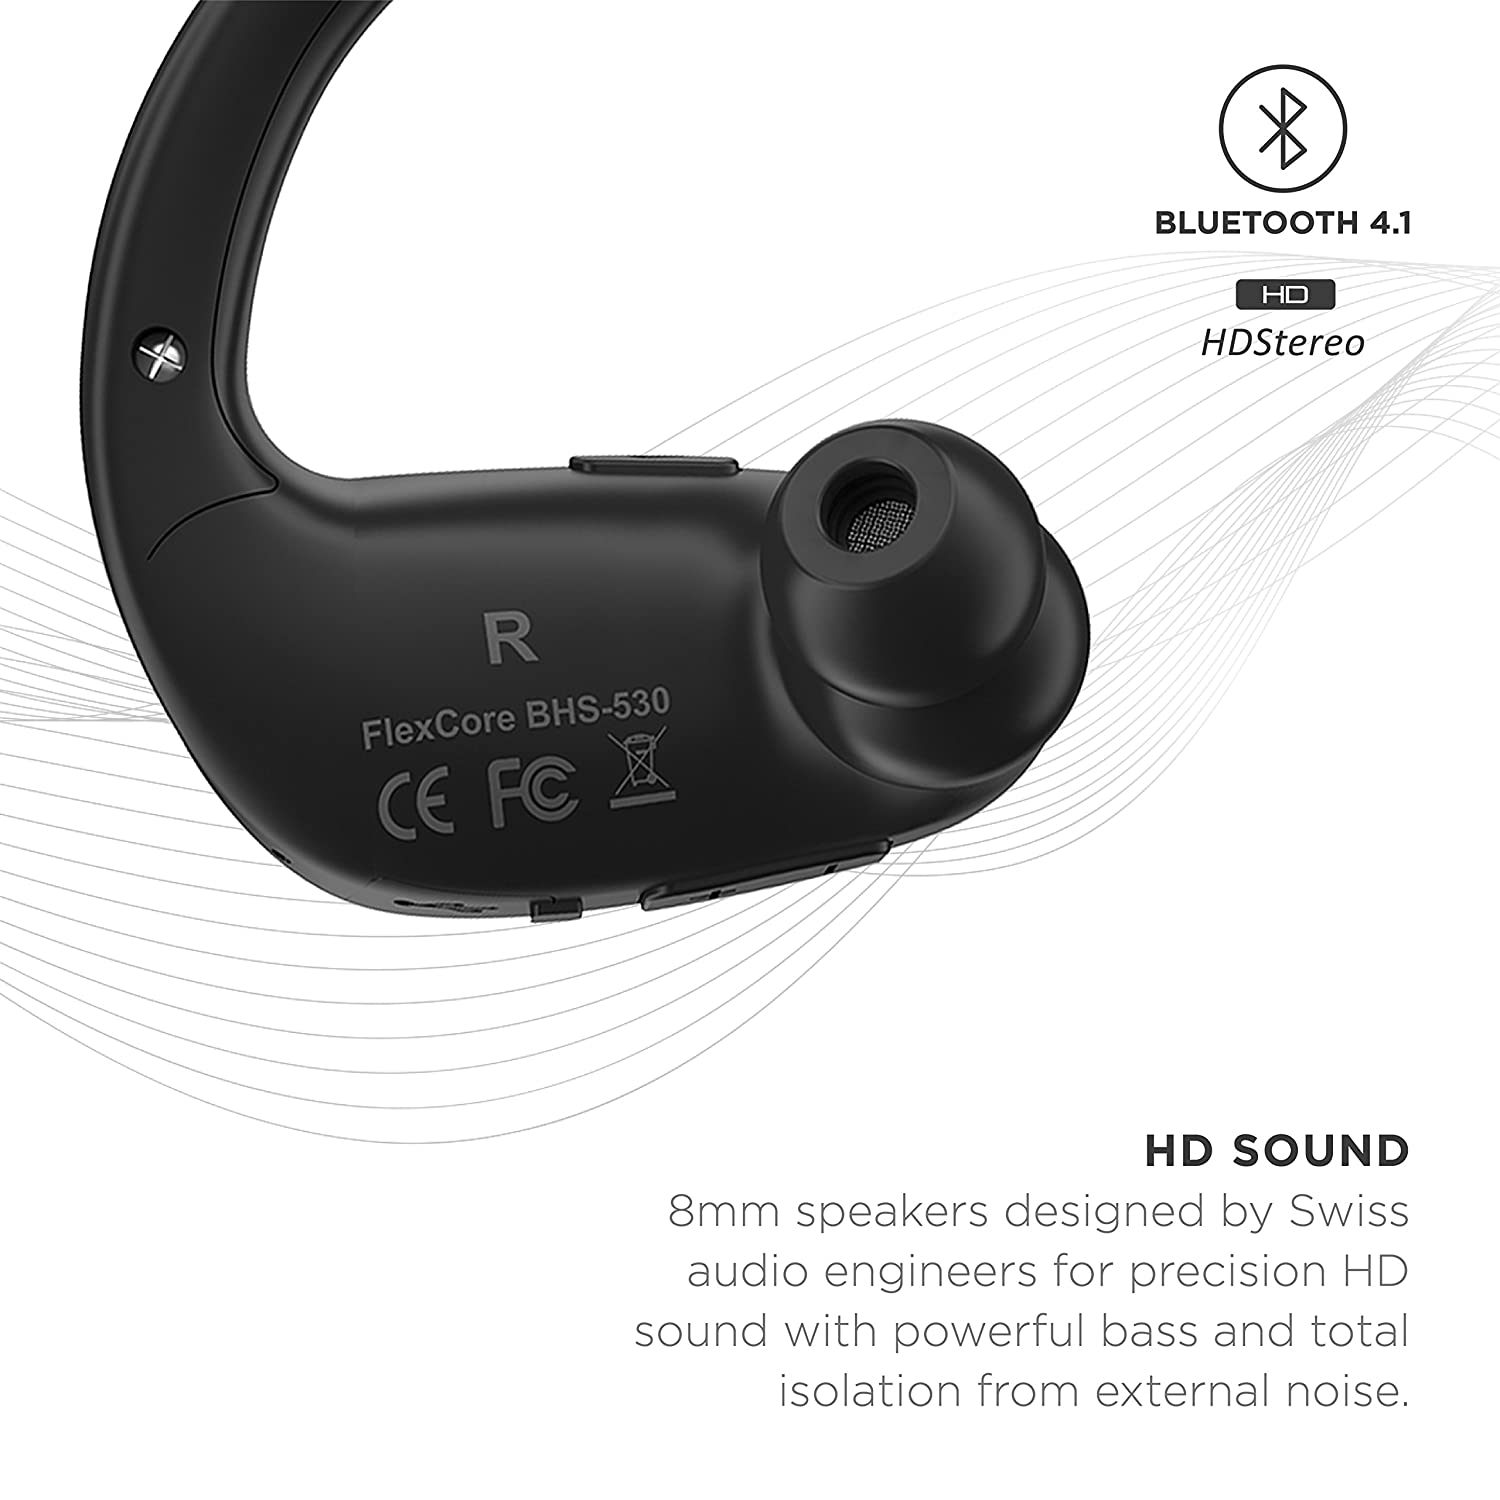 Phaiser FlexCore Gen-5 Bluetooth Headphones, Wireless Earbuds Stereo Earphones for Running with Mic and Lifetime Sweatproof Guarantee, Blackout